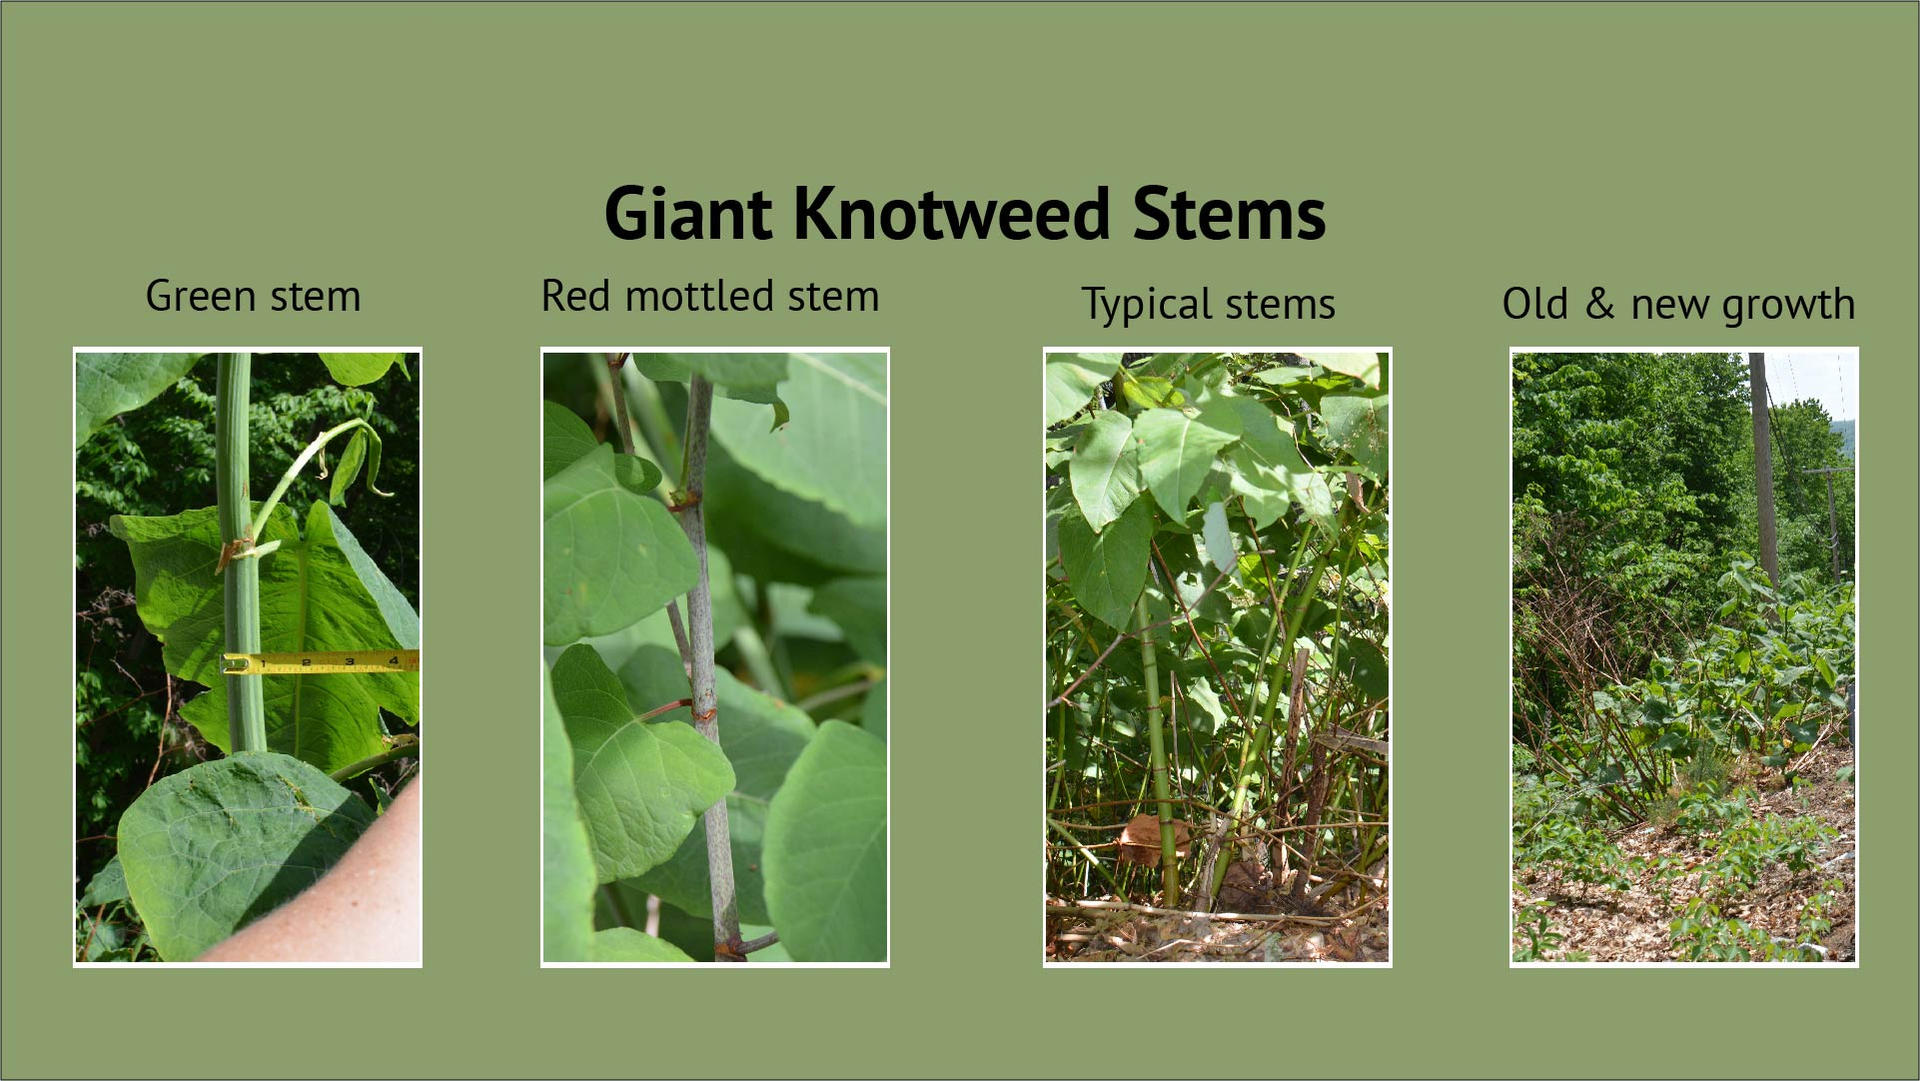 Giant Knotweed Stems